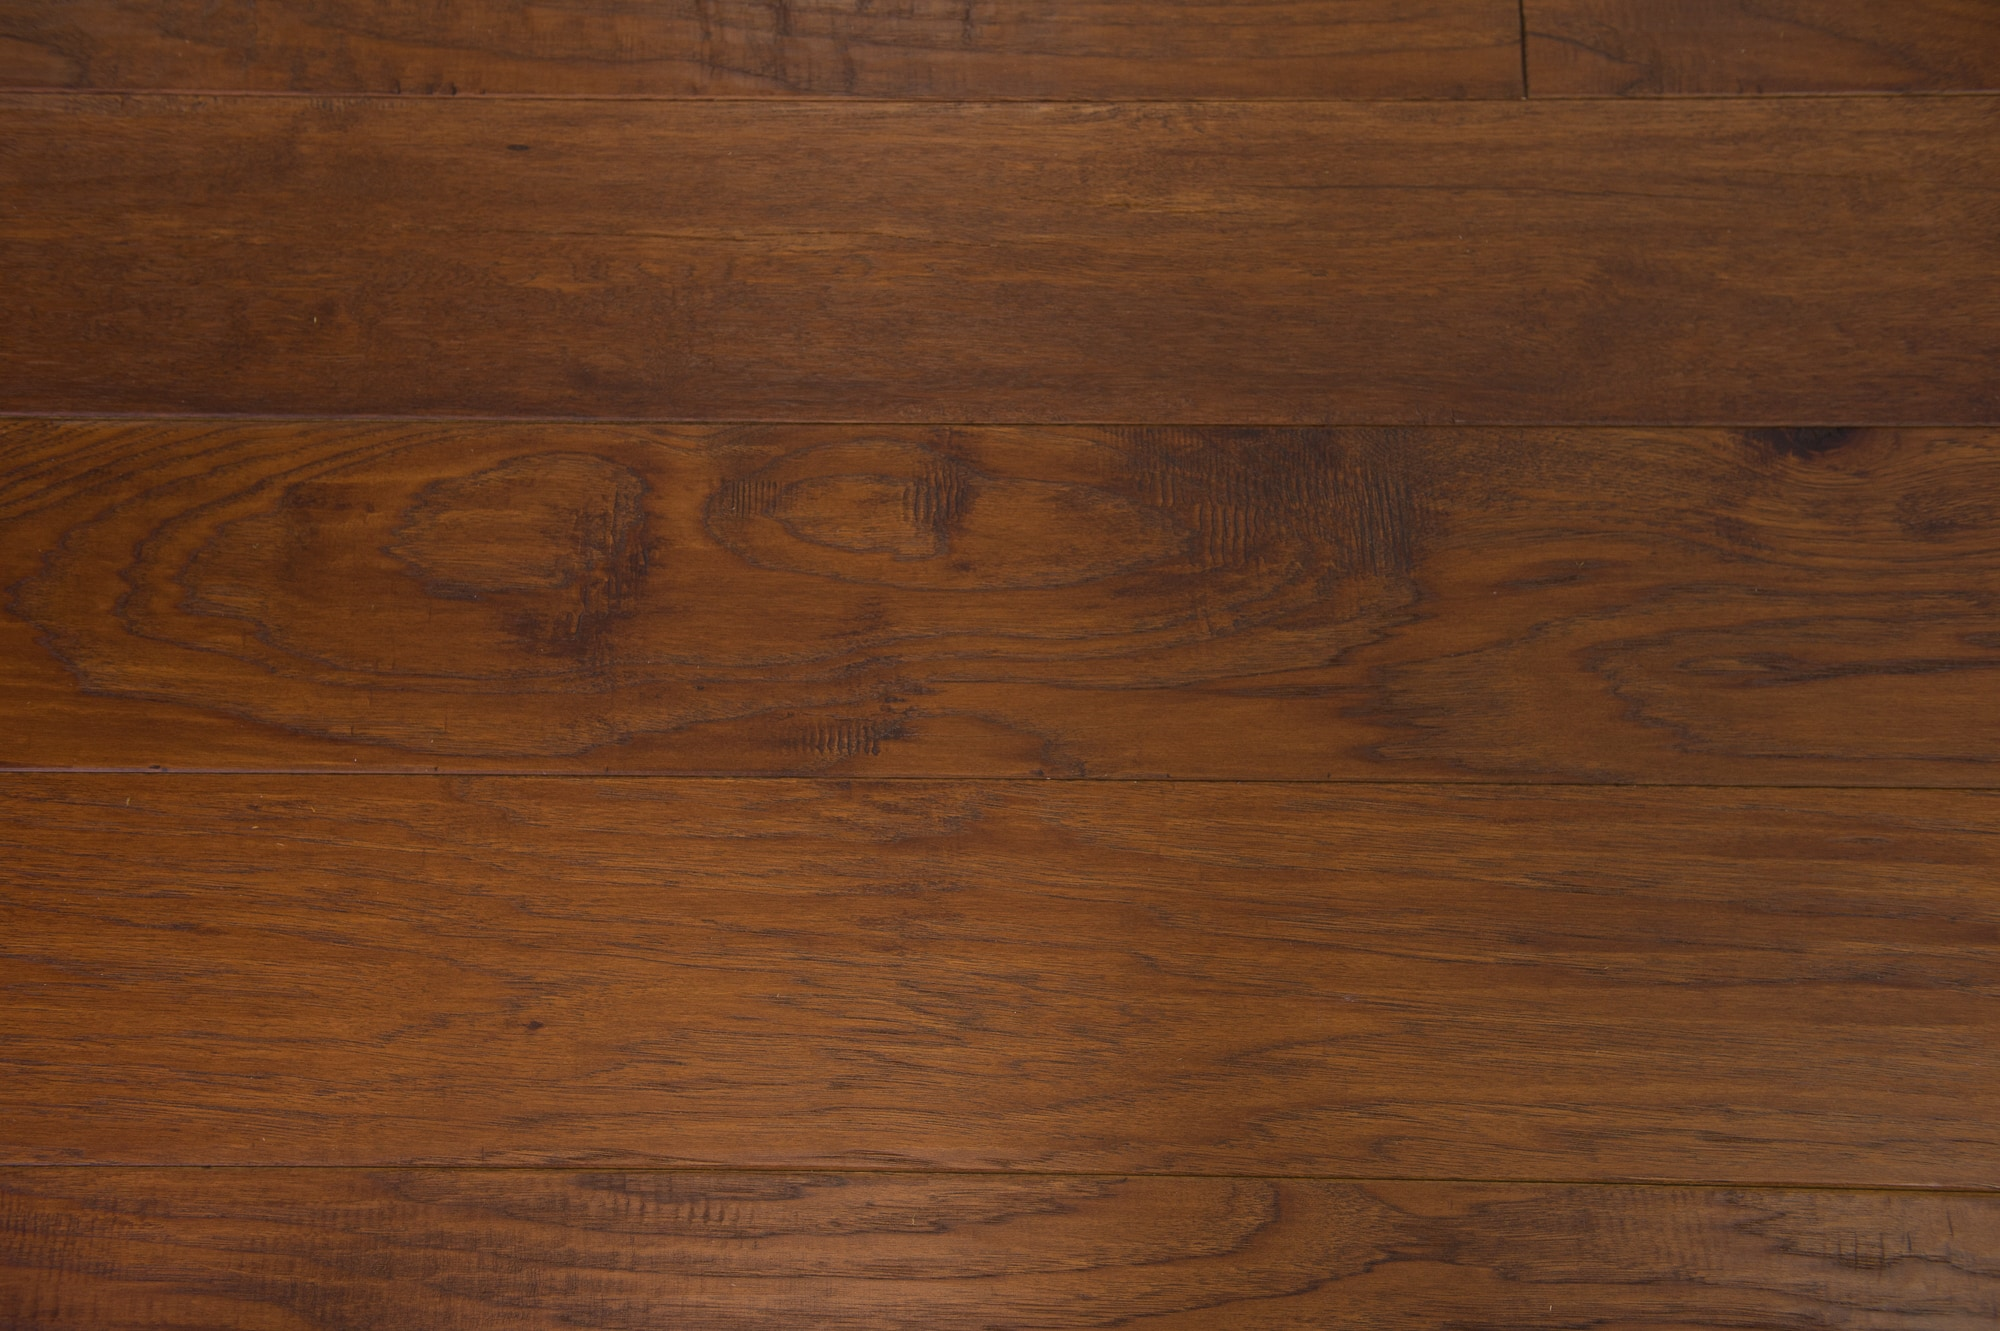 """Chestnut / Hickory / Urethane / Rustic/Character Grade / 1/2"""" x 7-1/2"""" Engineered Hardwood - Hickory - Arapaho Collection 0"""